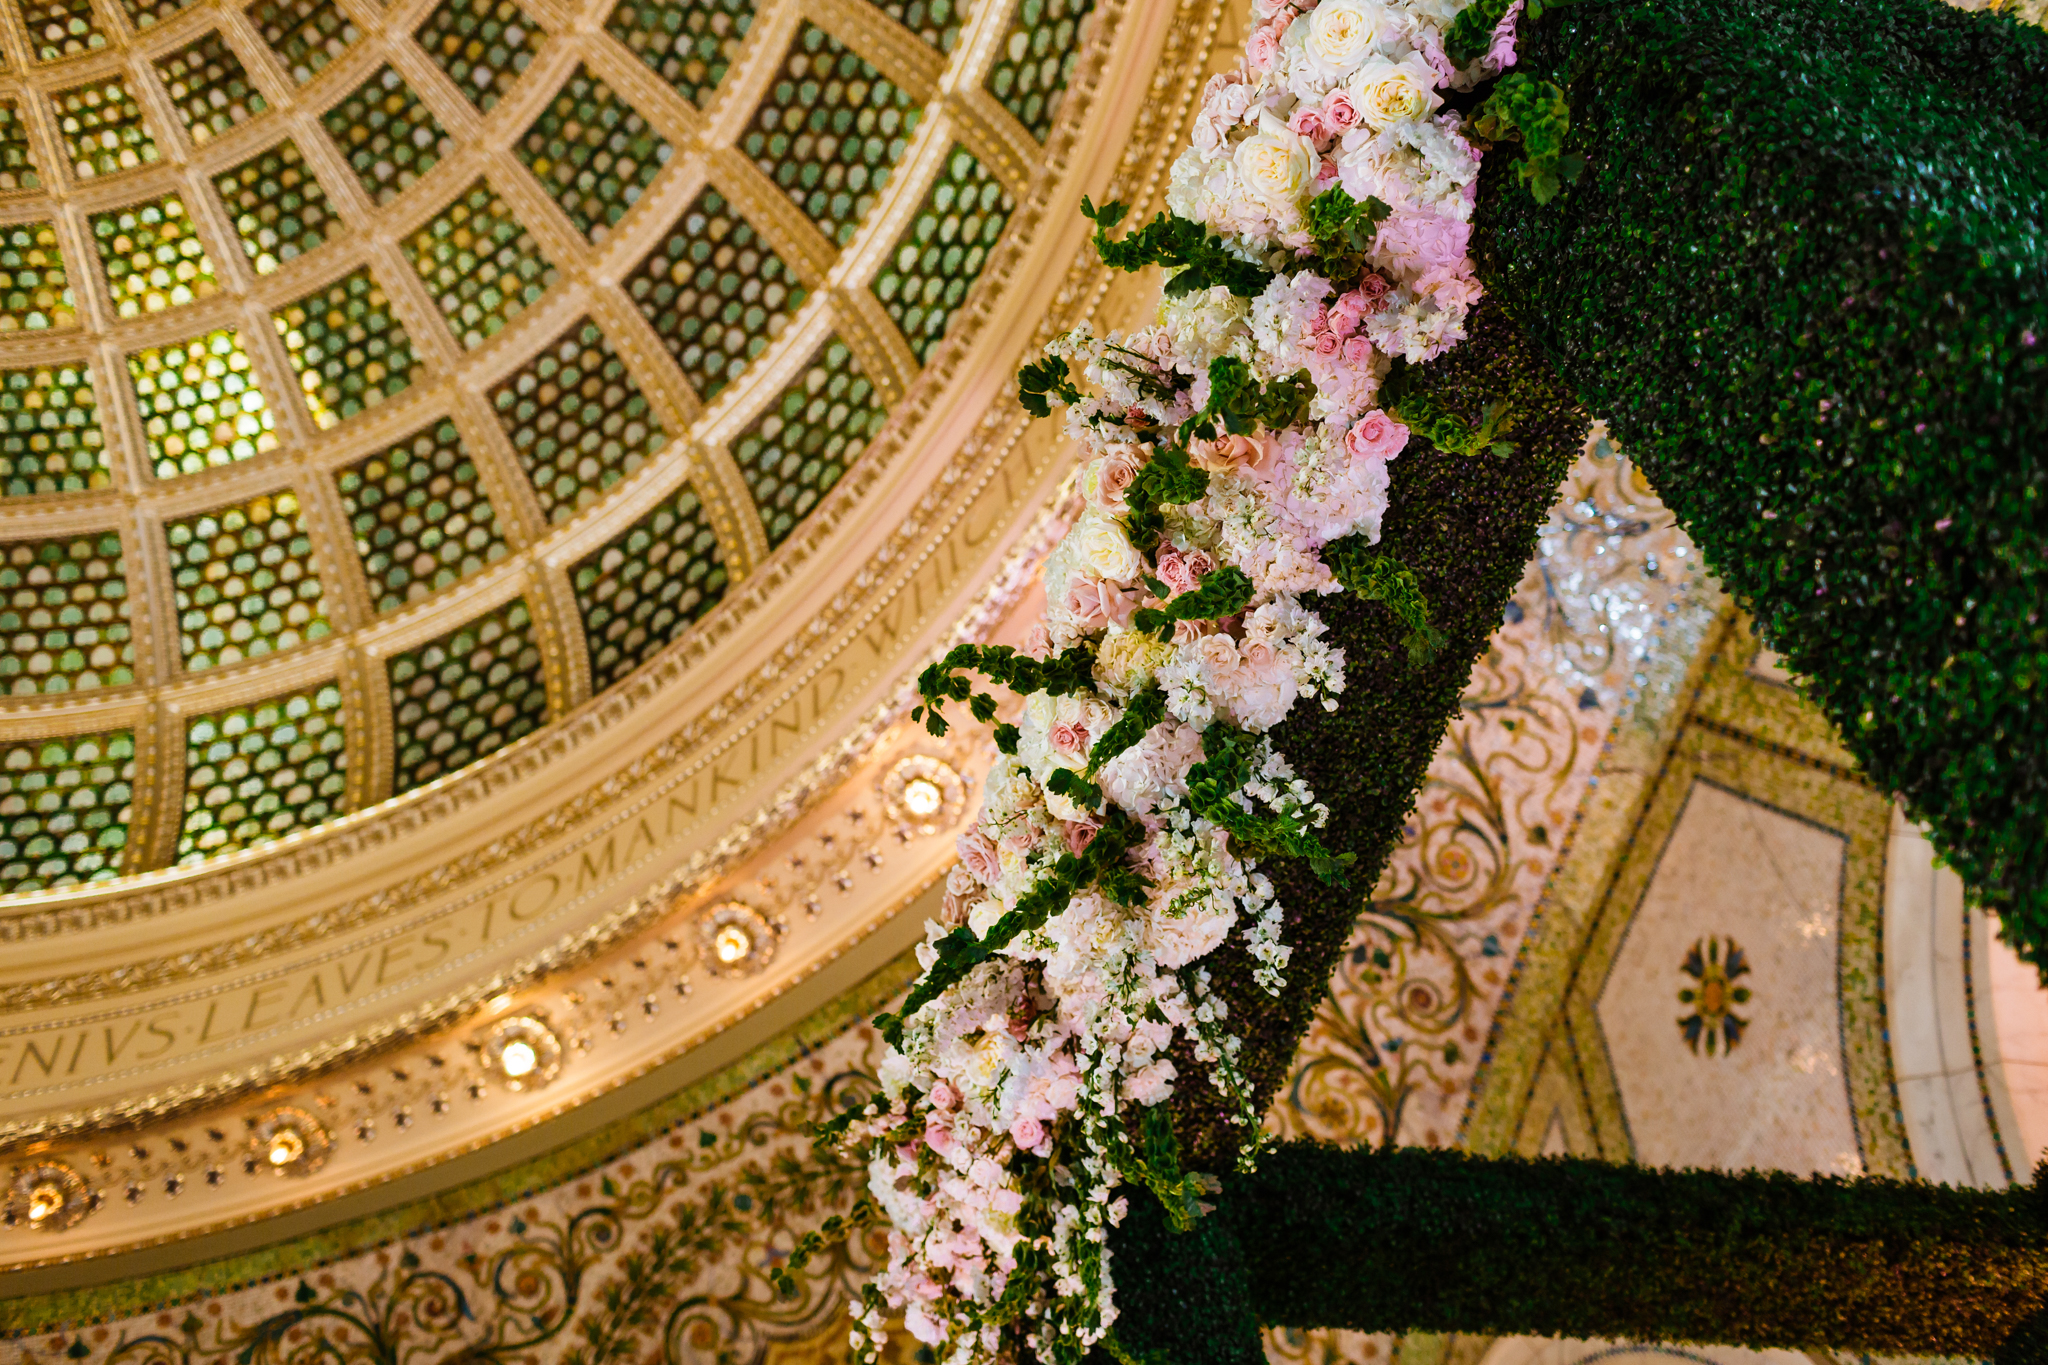 Stunning chuppah details under the Tiffany Dome at the Chicago Cultural Center in downtown Chicago